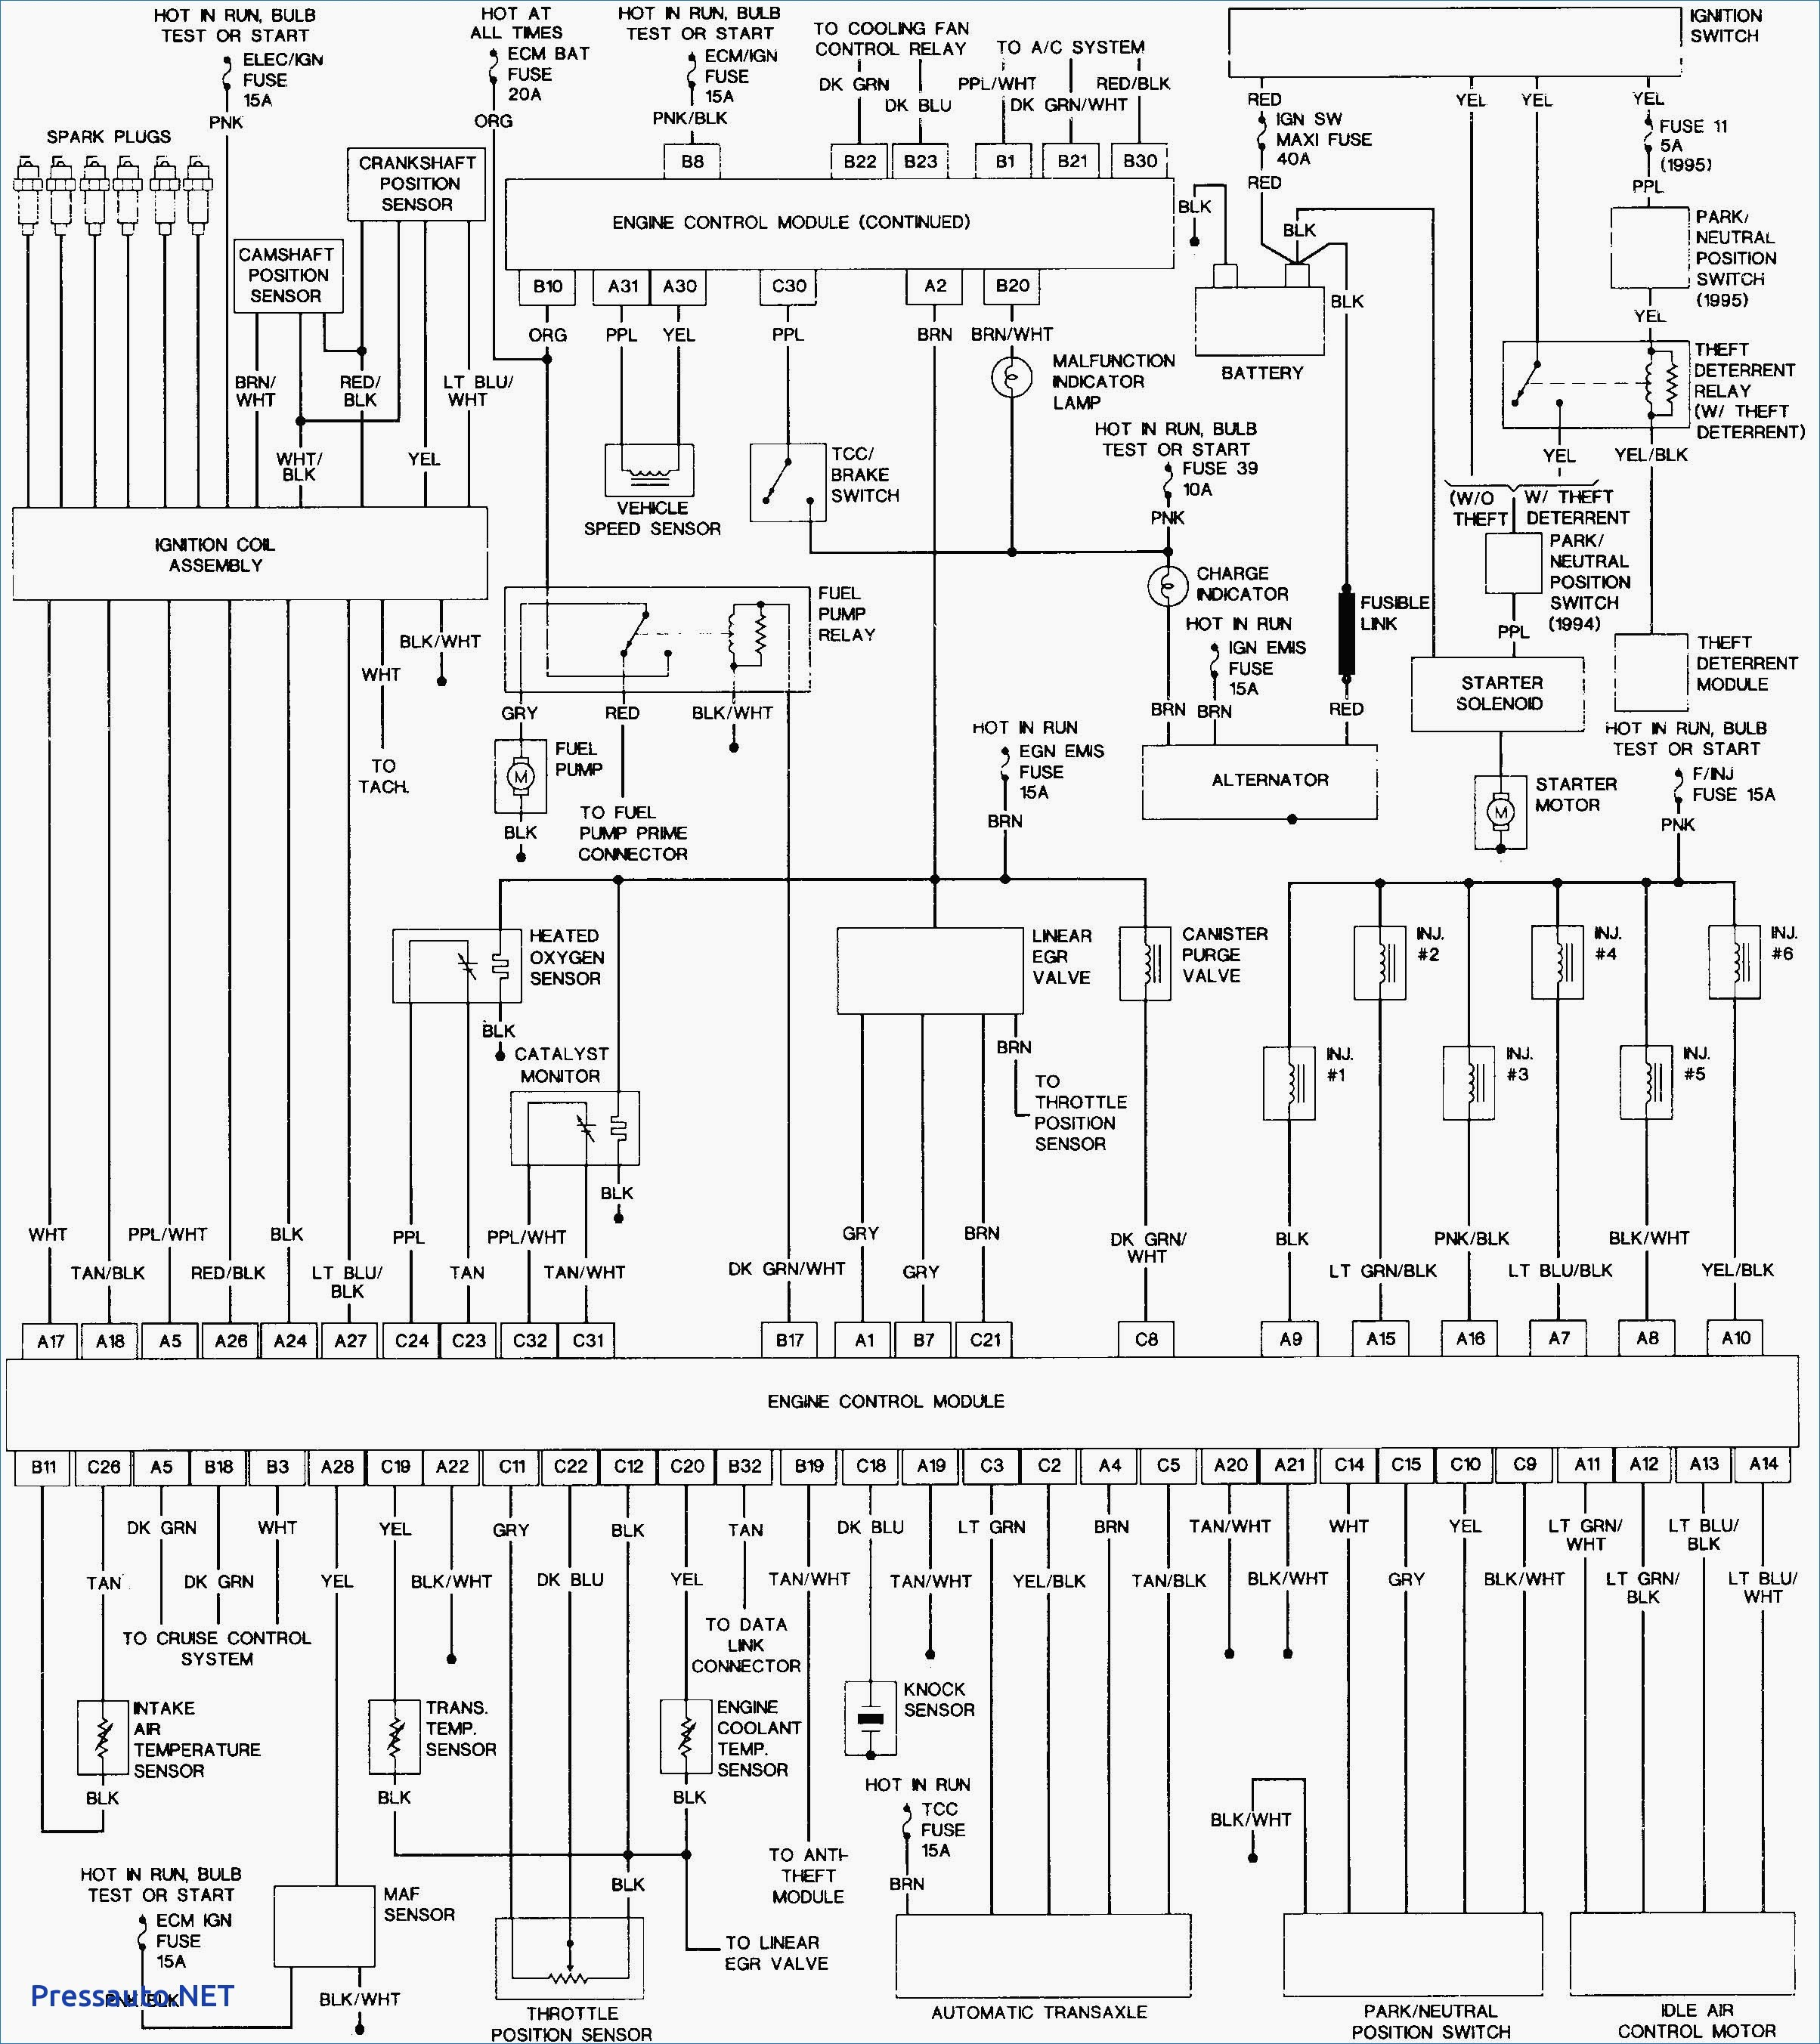 DIAGRAM] 2009 Jetta Tdi Wiring Diagram Grounds FULL Version HD Quality  Diagram Grounds - SCHEMATICHEAVAN.ANTONIOVERGARA.ITAntonio Vergara